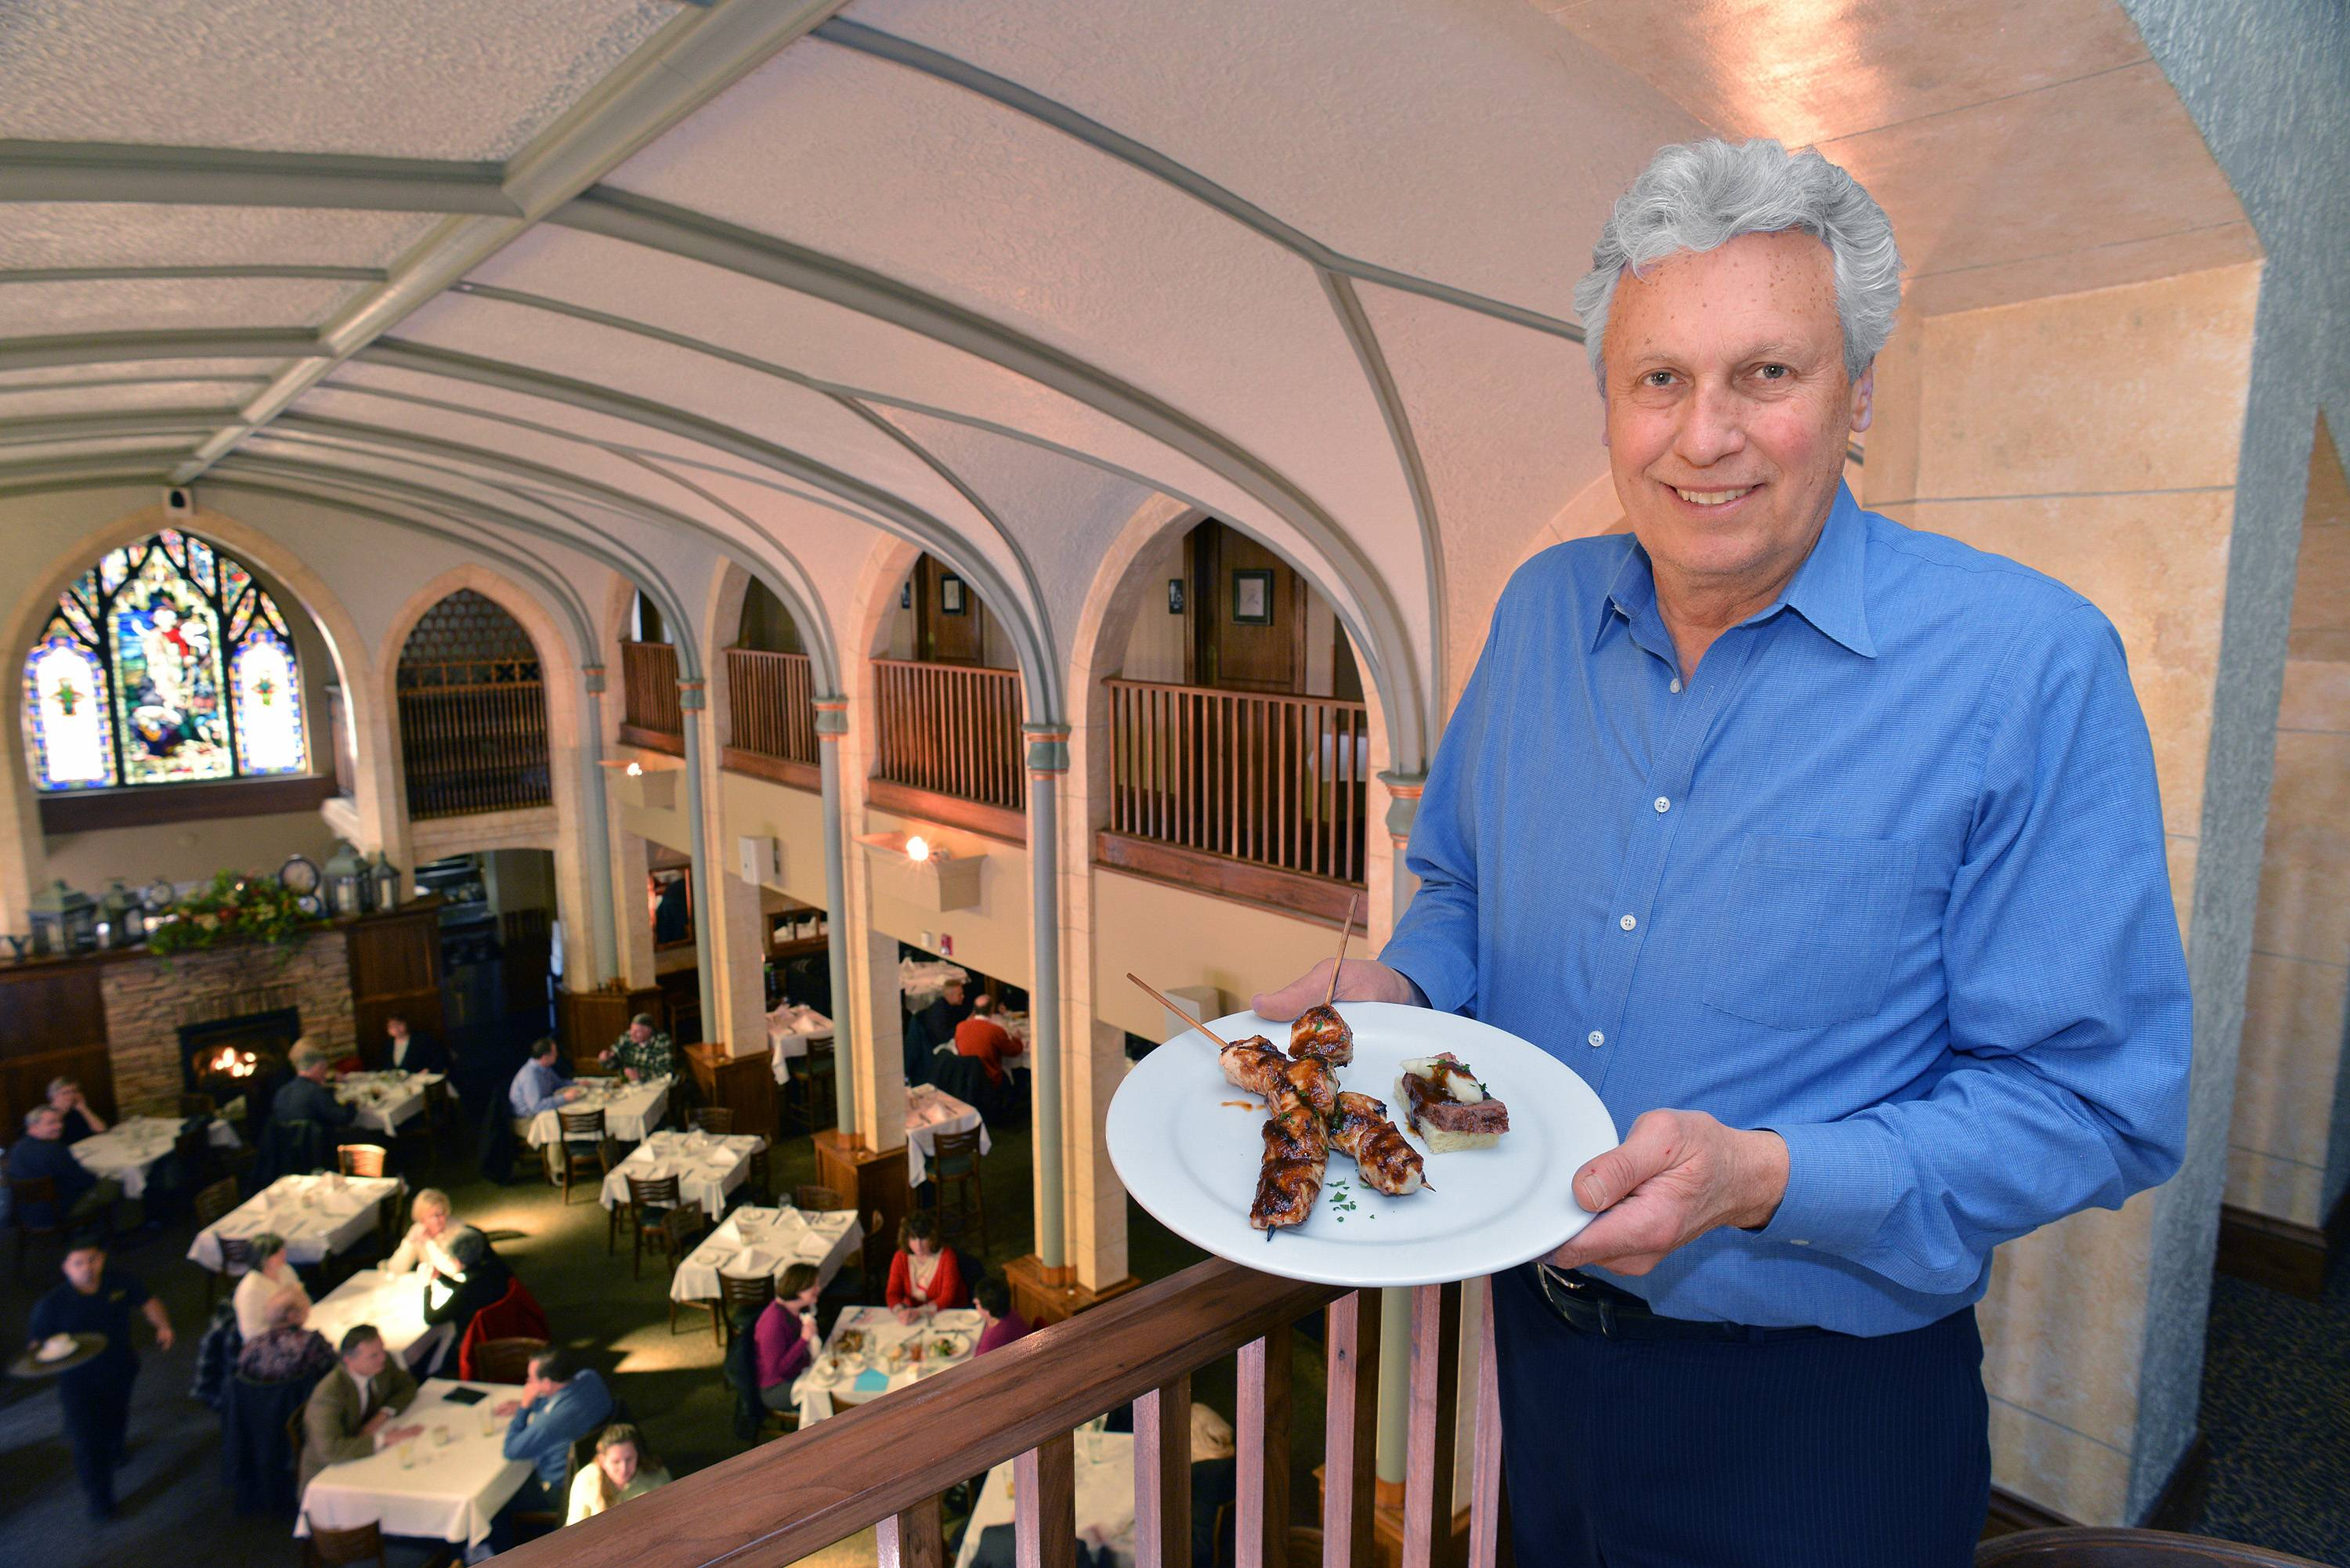 Dick O'Gorman, owner of the Ivy restaurant in downtown Wheaton, displays two specials -- chicken satay skewers and andouille sausage meatloaf canap�s -- that he'll be offering during a kickoff event for the Downtown Wheaton Association's first Restaurant Week.